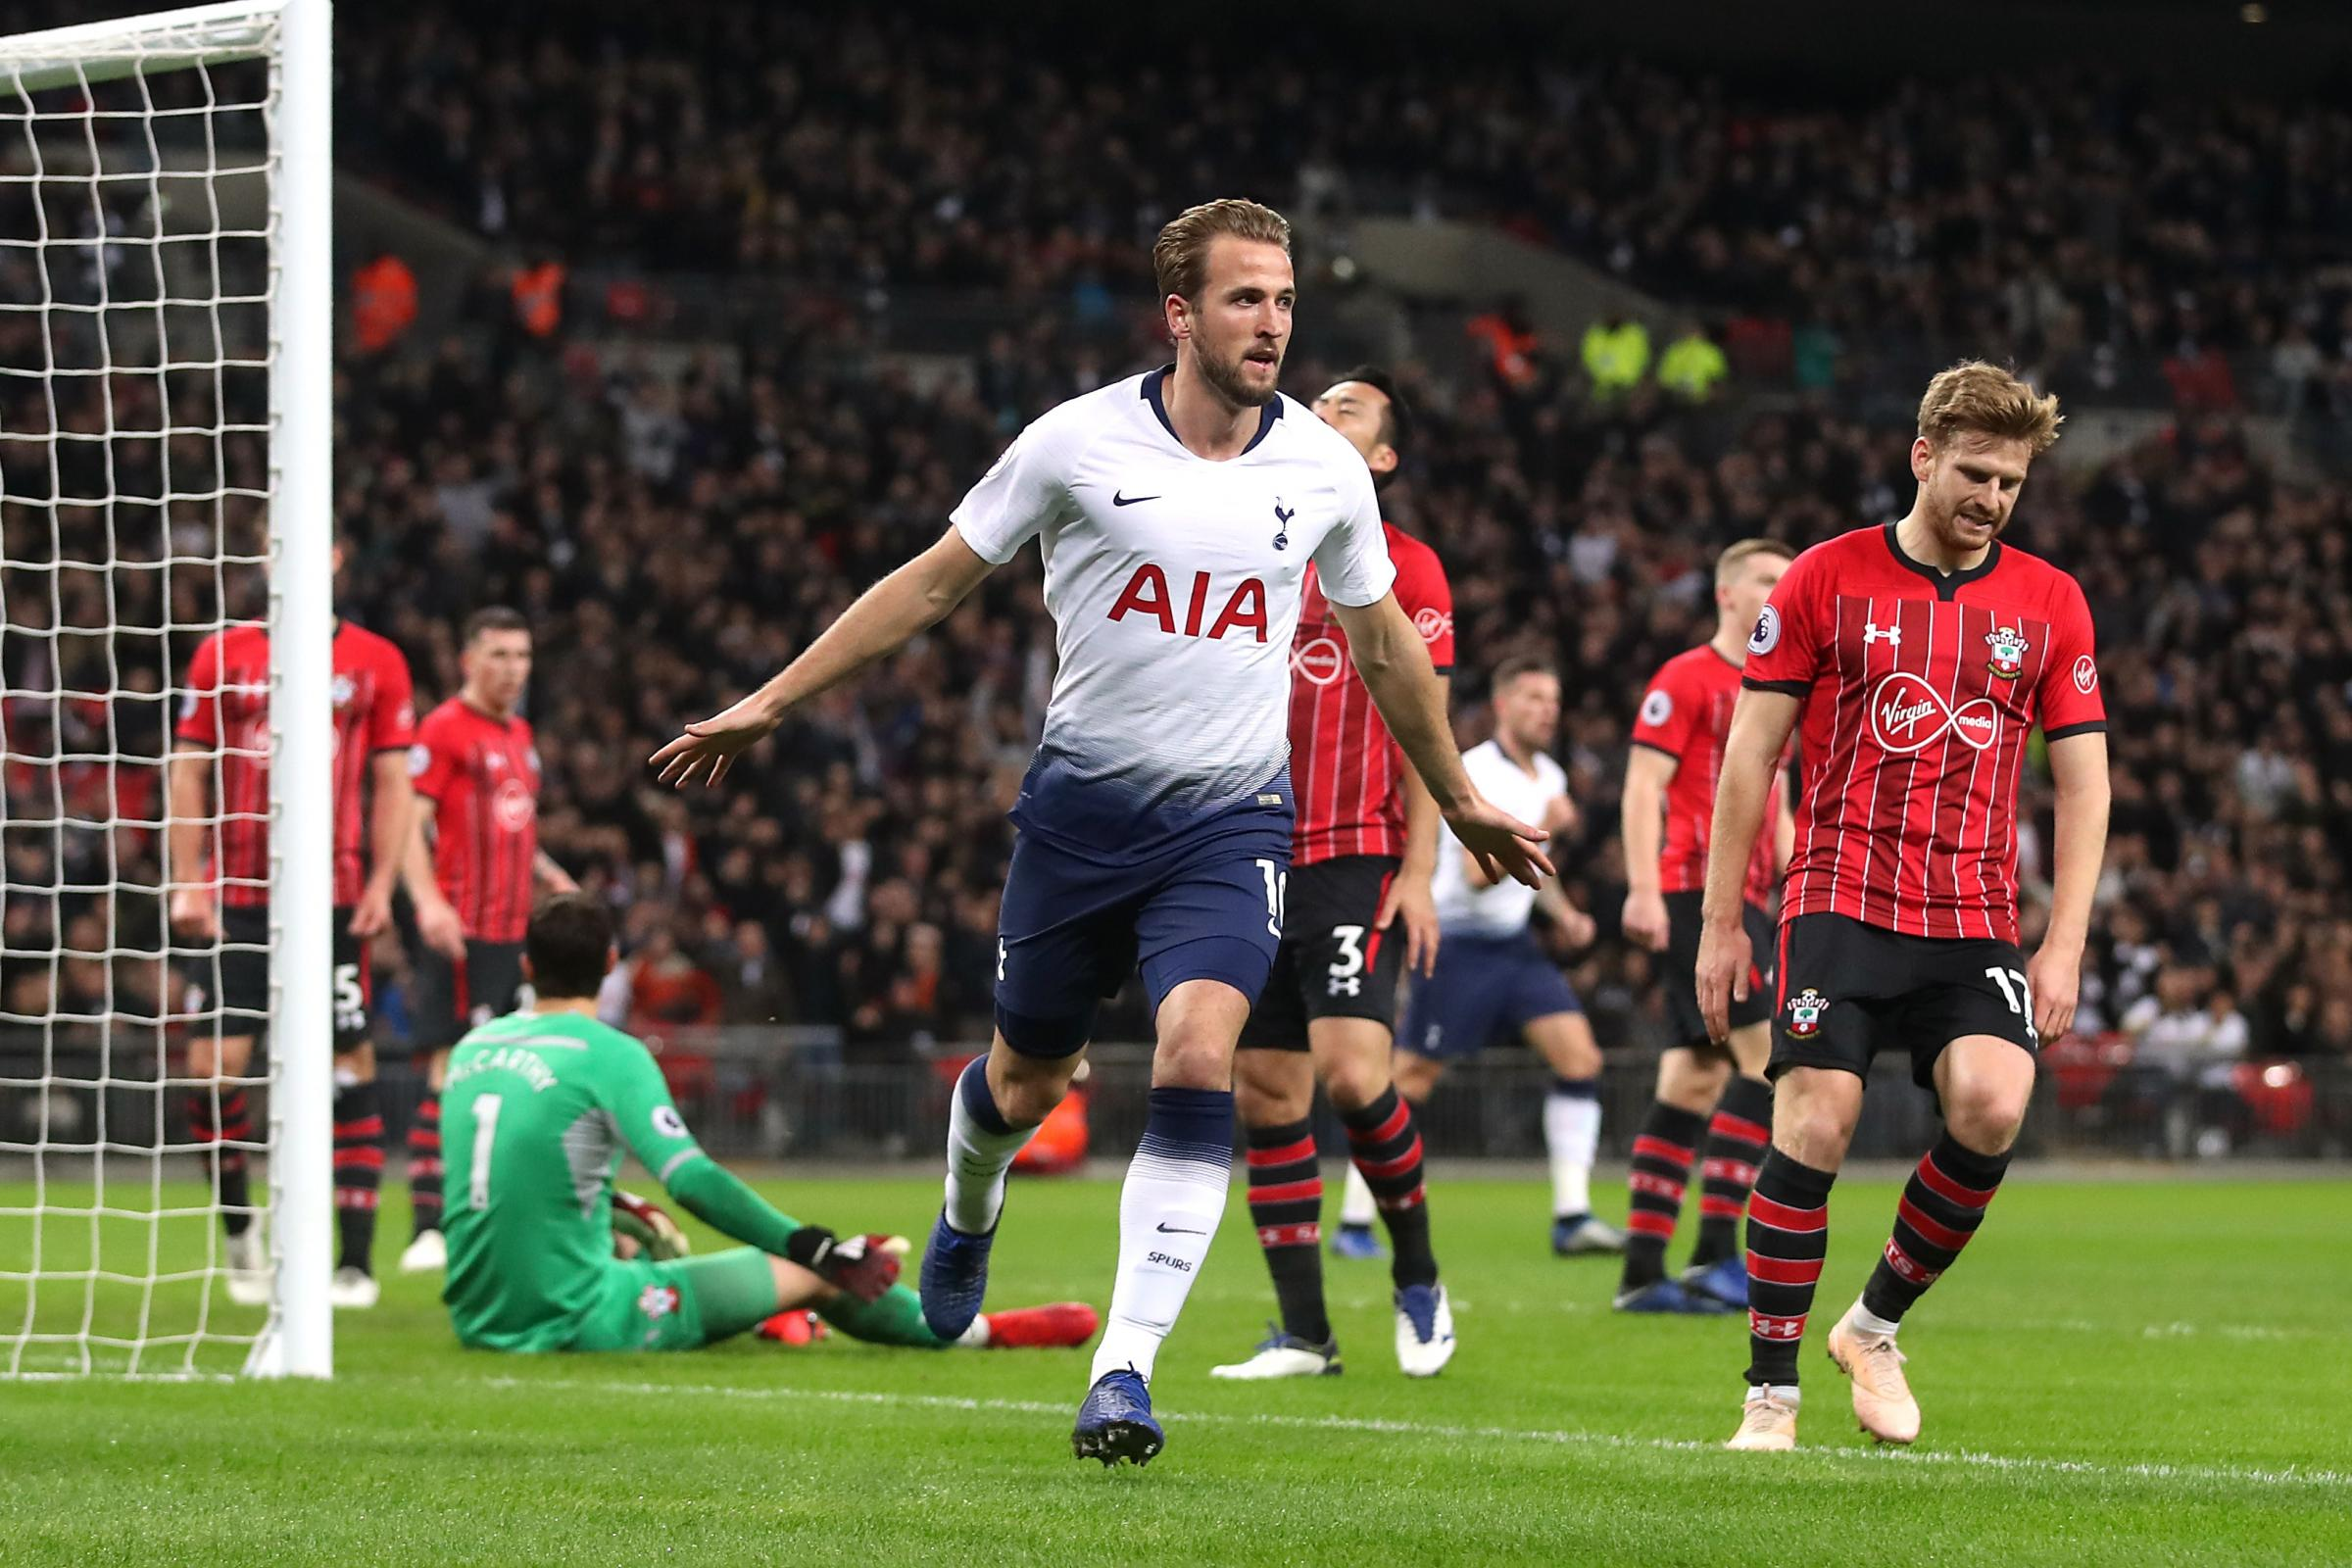 Harry Kane put Tottenham ahead with his ninth Premier League goal of the season